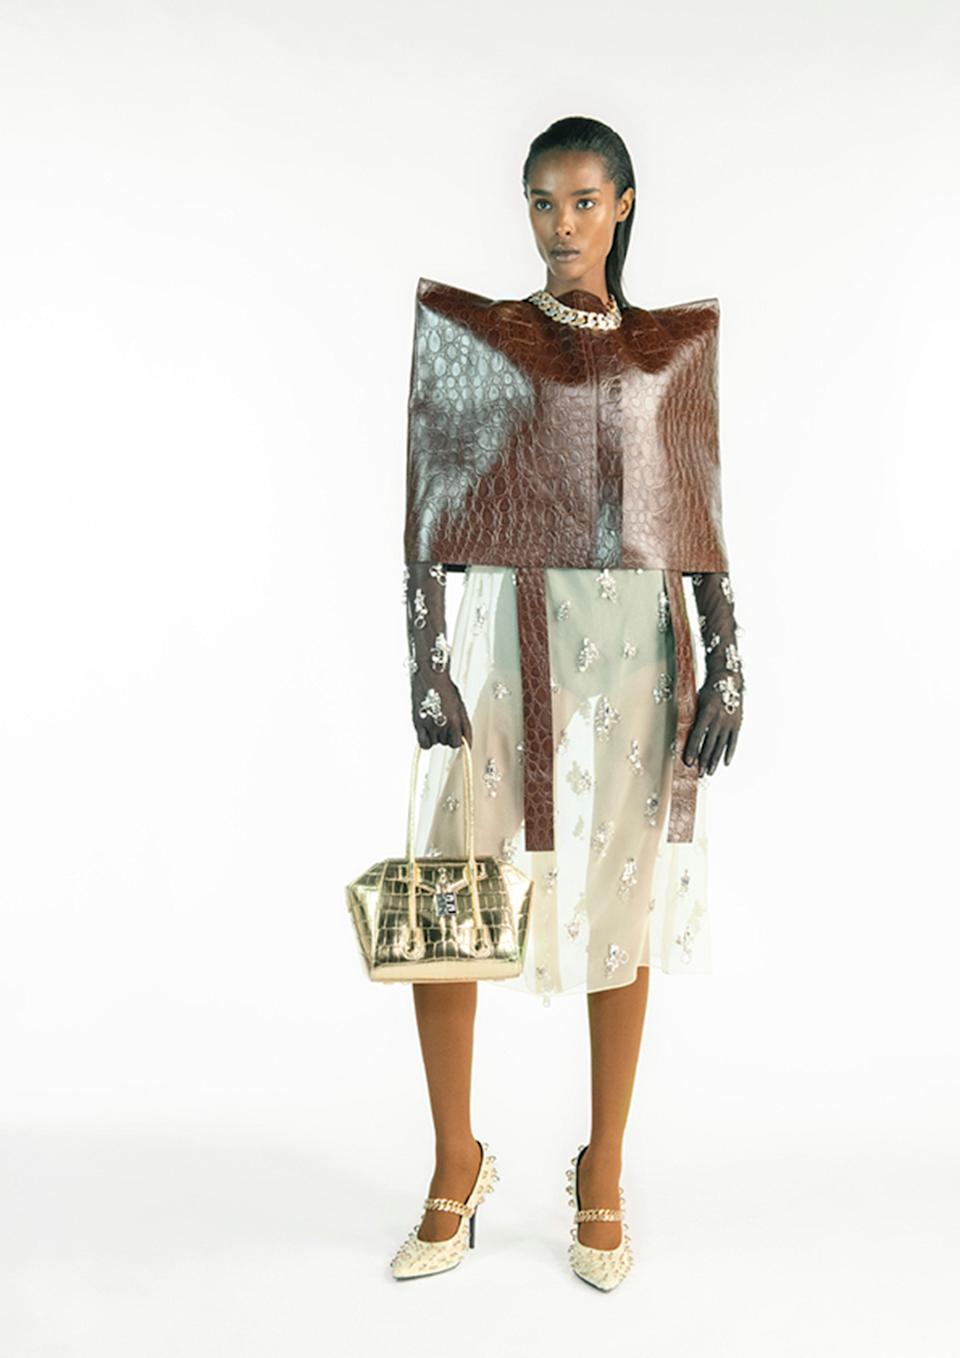 <h2>Big Shoulders<br></h2><br>Back in the '30s, designers like Elsa Schiaparelli began adding shoulder pads and bubble-like sleeves to dresses and outerwear as a way to make women feel confident and powerful — which, in today's political landscape, is just as important as it was then, post-Great Depression. With that, it makes total sense that Matthew Williams would showcase strong shoulders for his debut at Givenchy, and that Rick Owens would follow suit. Chanel, Louis Vuitton, Isabel Marant, and Balenciaga also presented big, slouchy shoulders in their spring collections. <br><br><em>Givenchy</em>